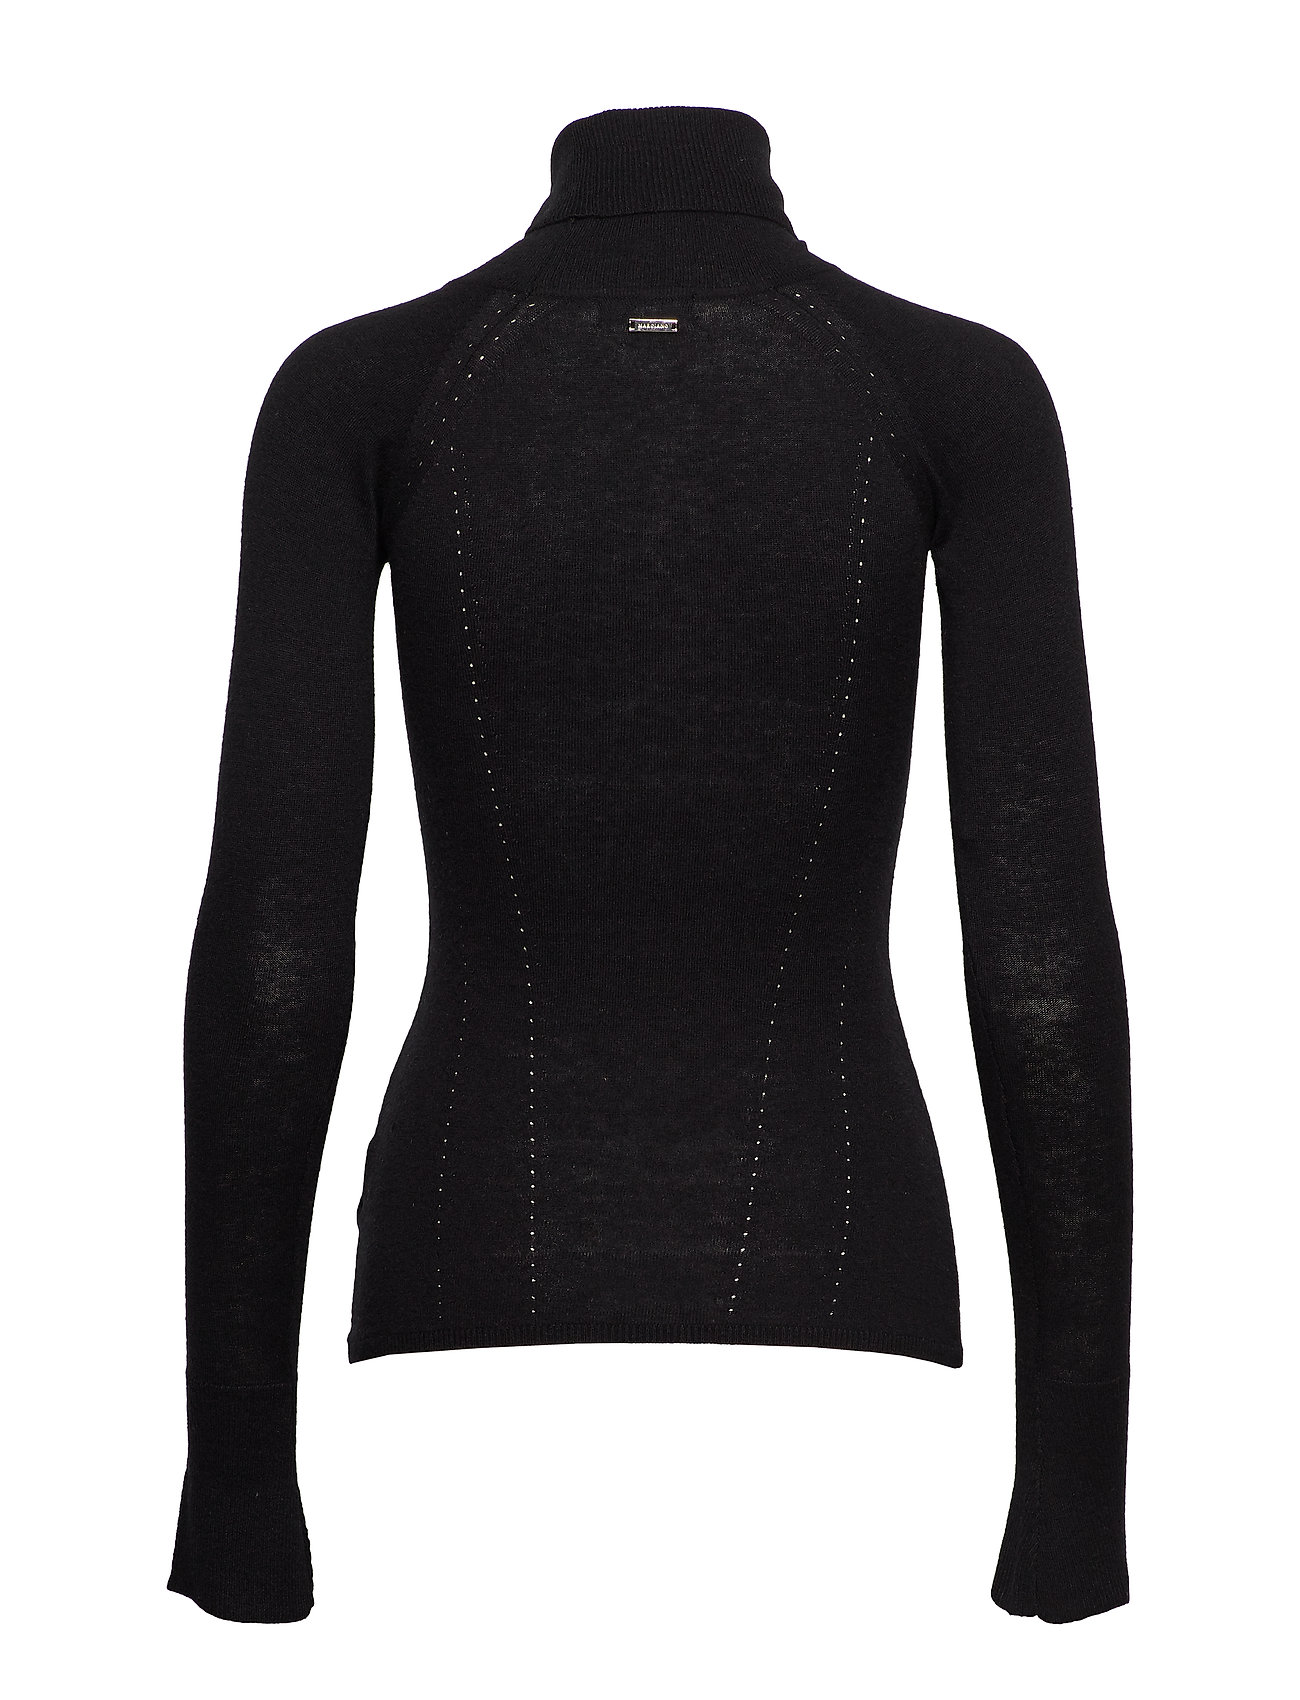 Black Guess Cabiria Sweater A996Marciano Topjet By hQtdsrC